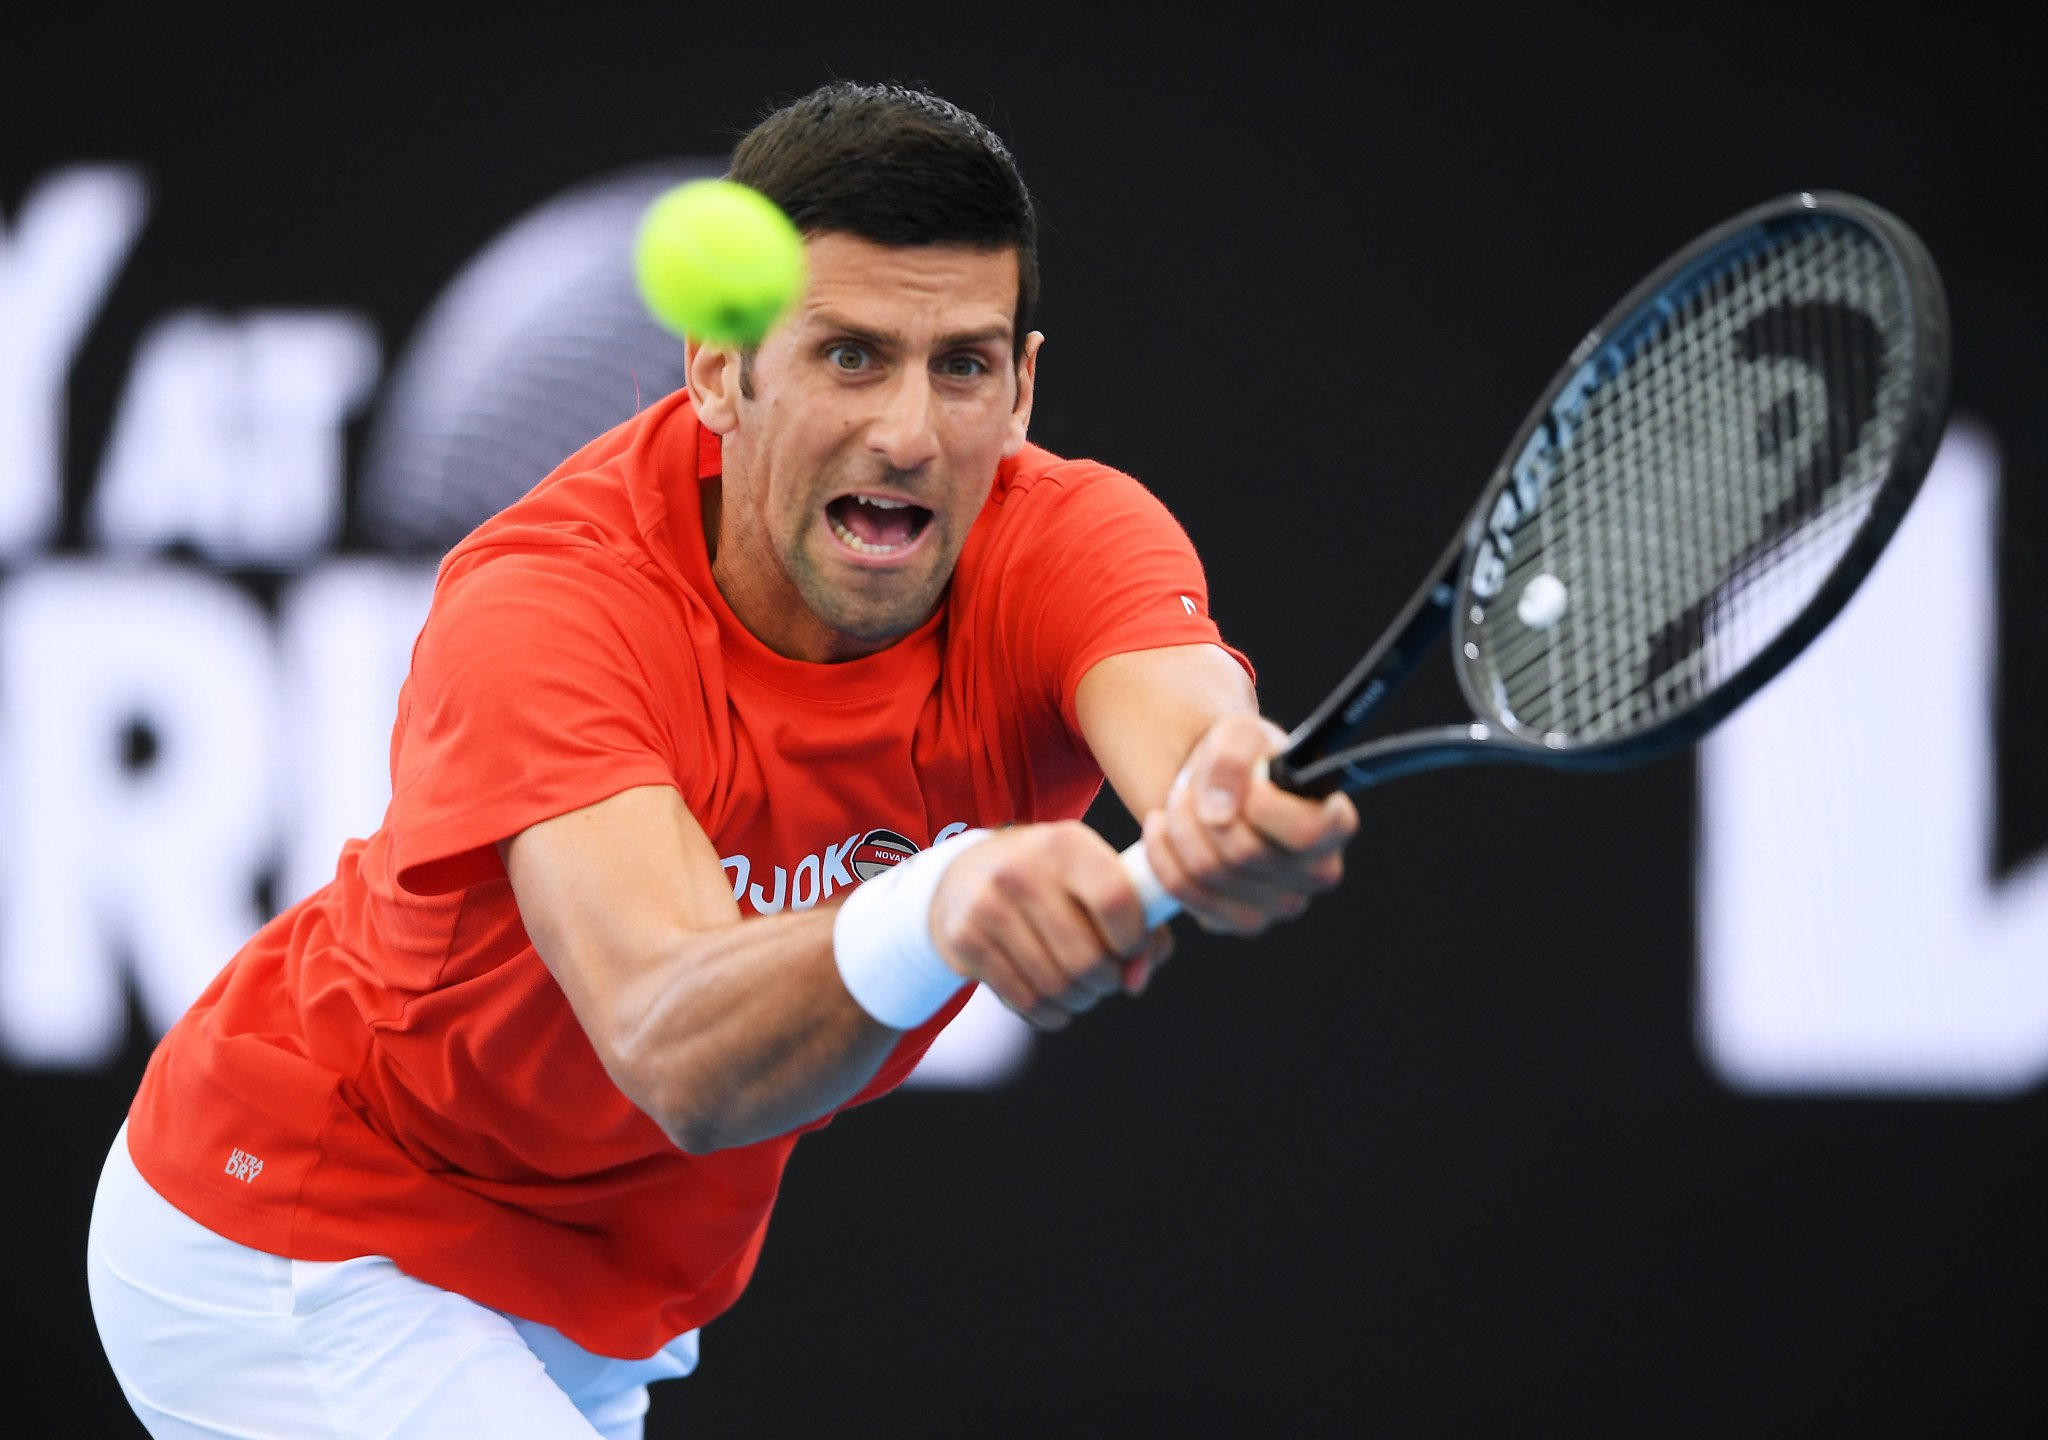 Djokovic hoping to feed off crowd energy at ATP Cup as Serbia eyes title defence